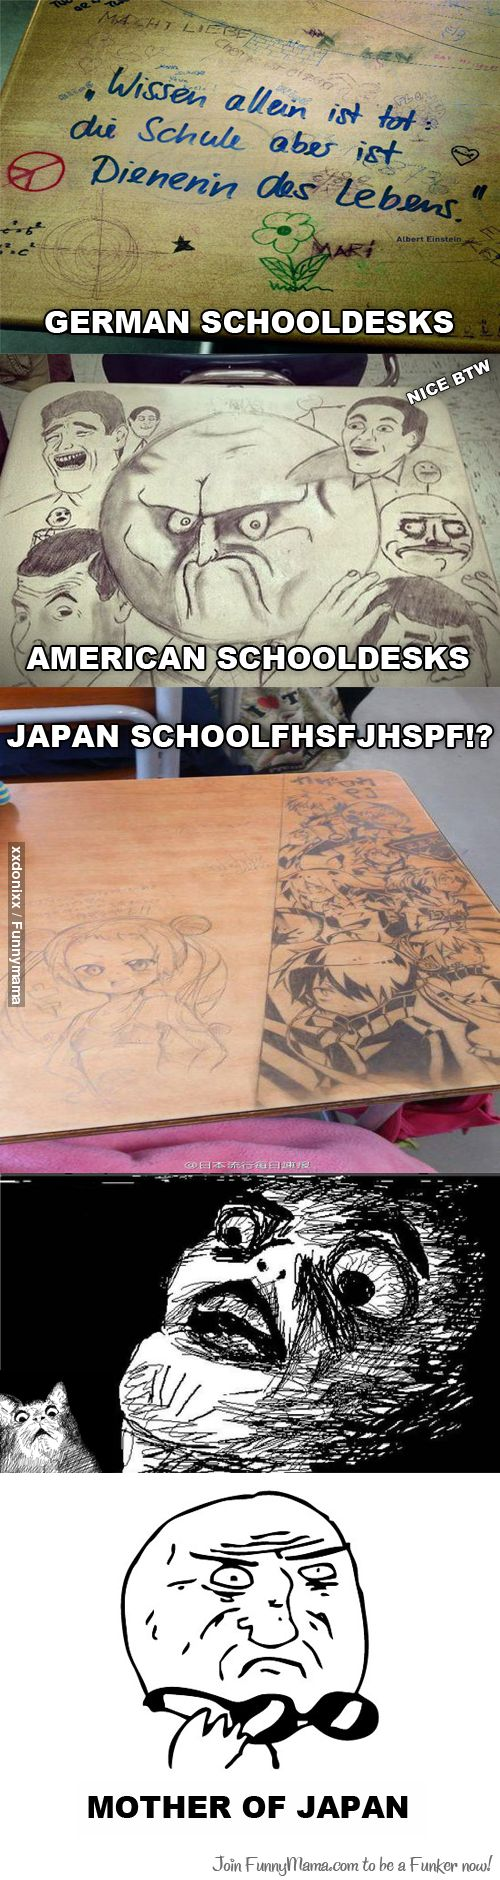 Mother of Japan. xD